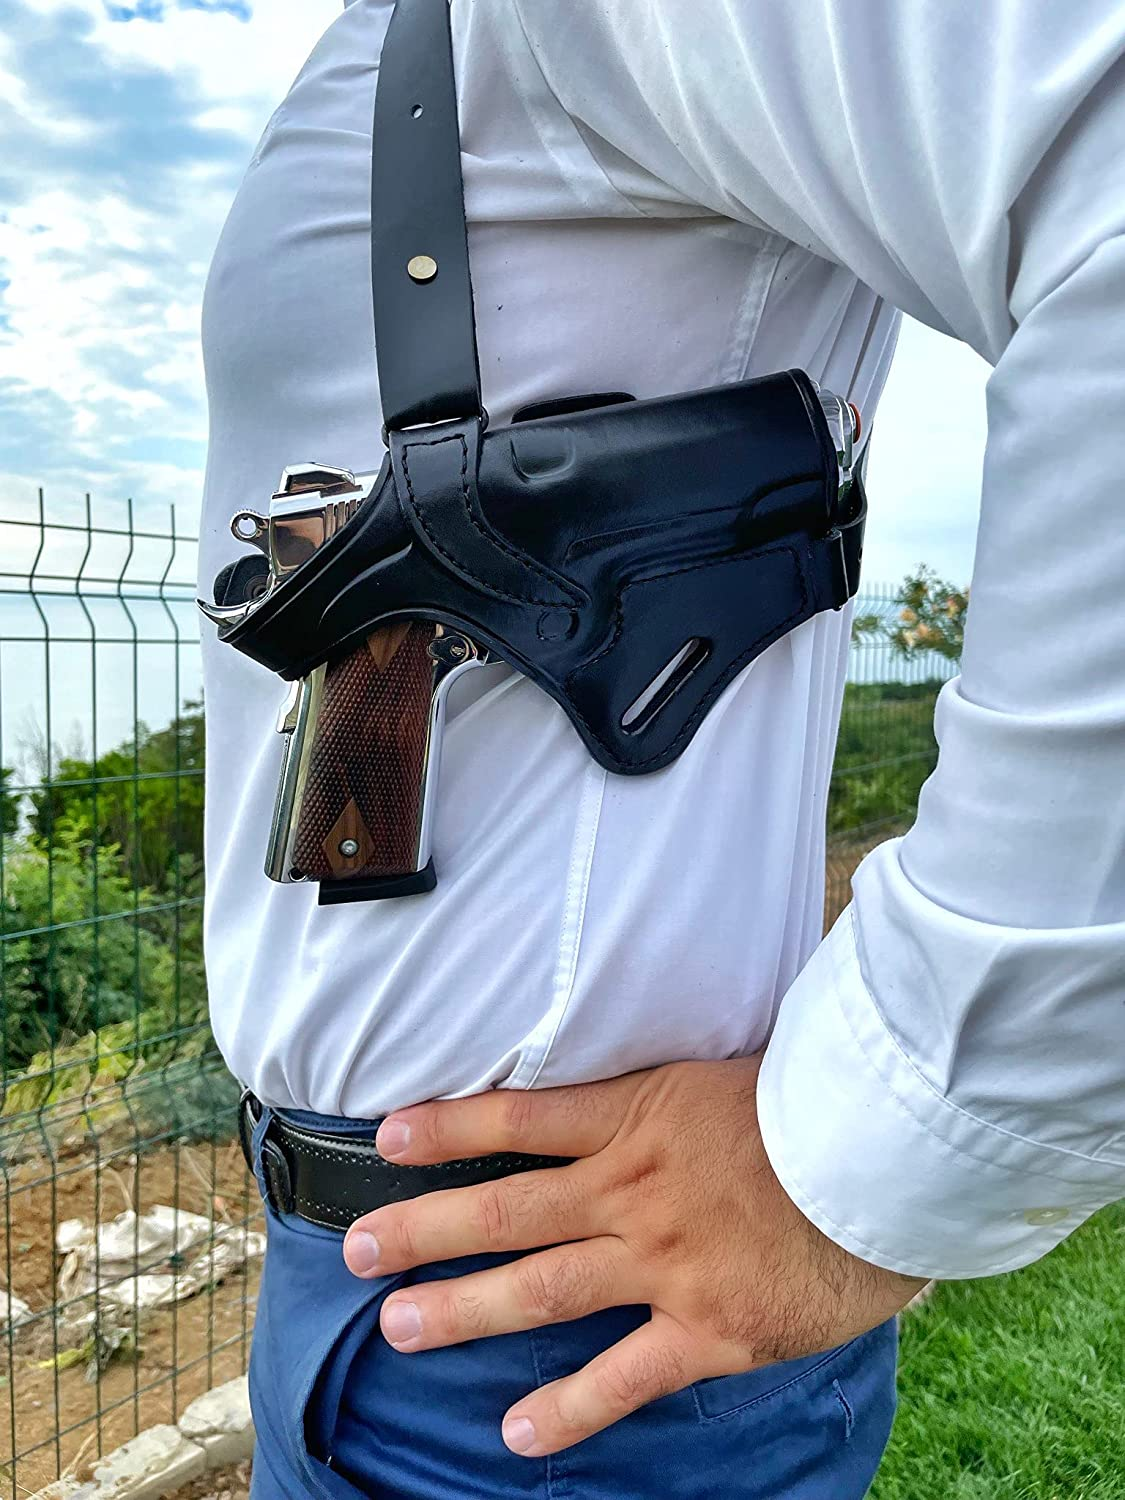 Ottoza Leather Gun Holster 1911 Du Hand Right Shoulder In At the price of surprise stock -